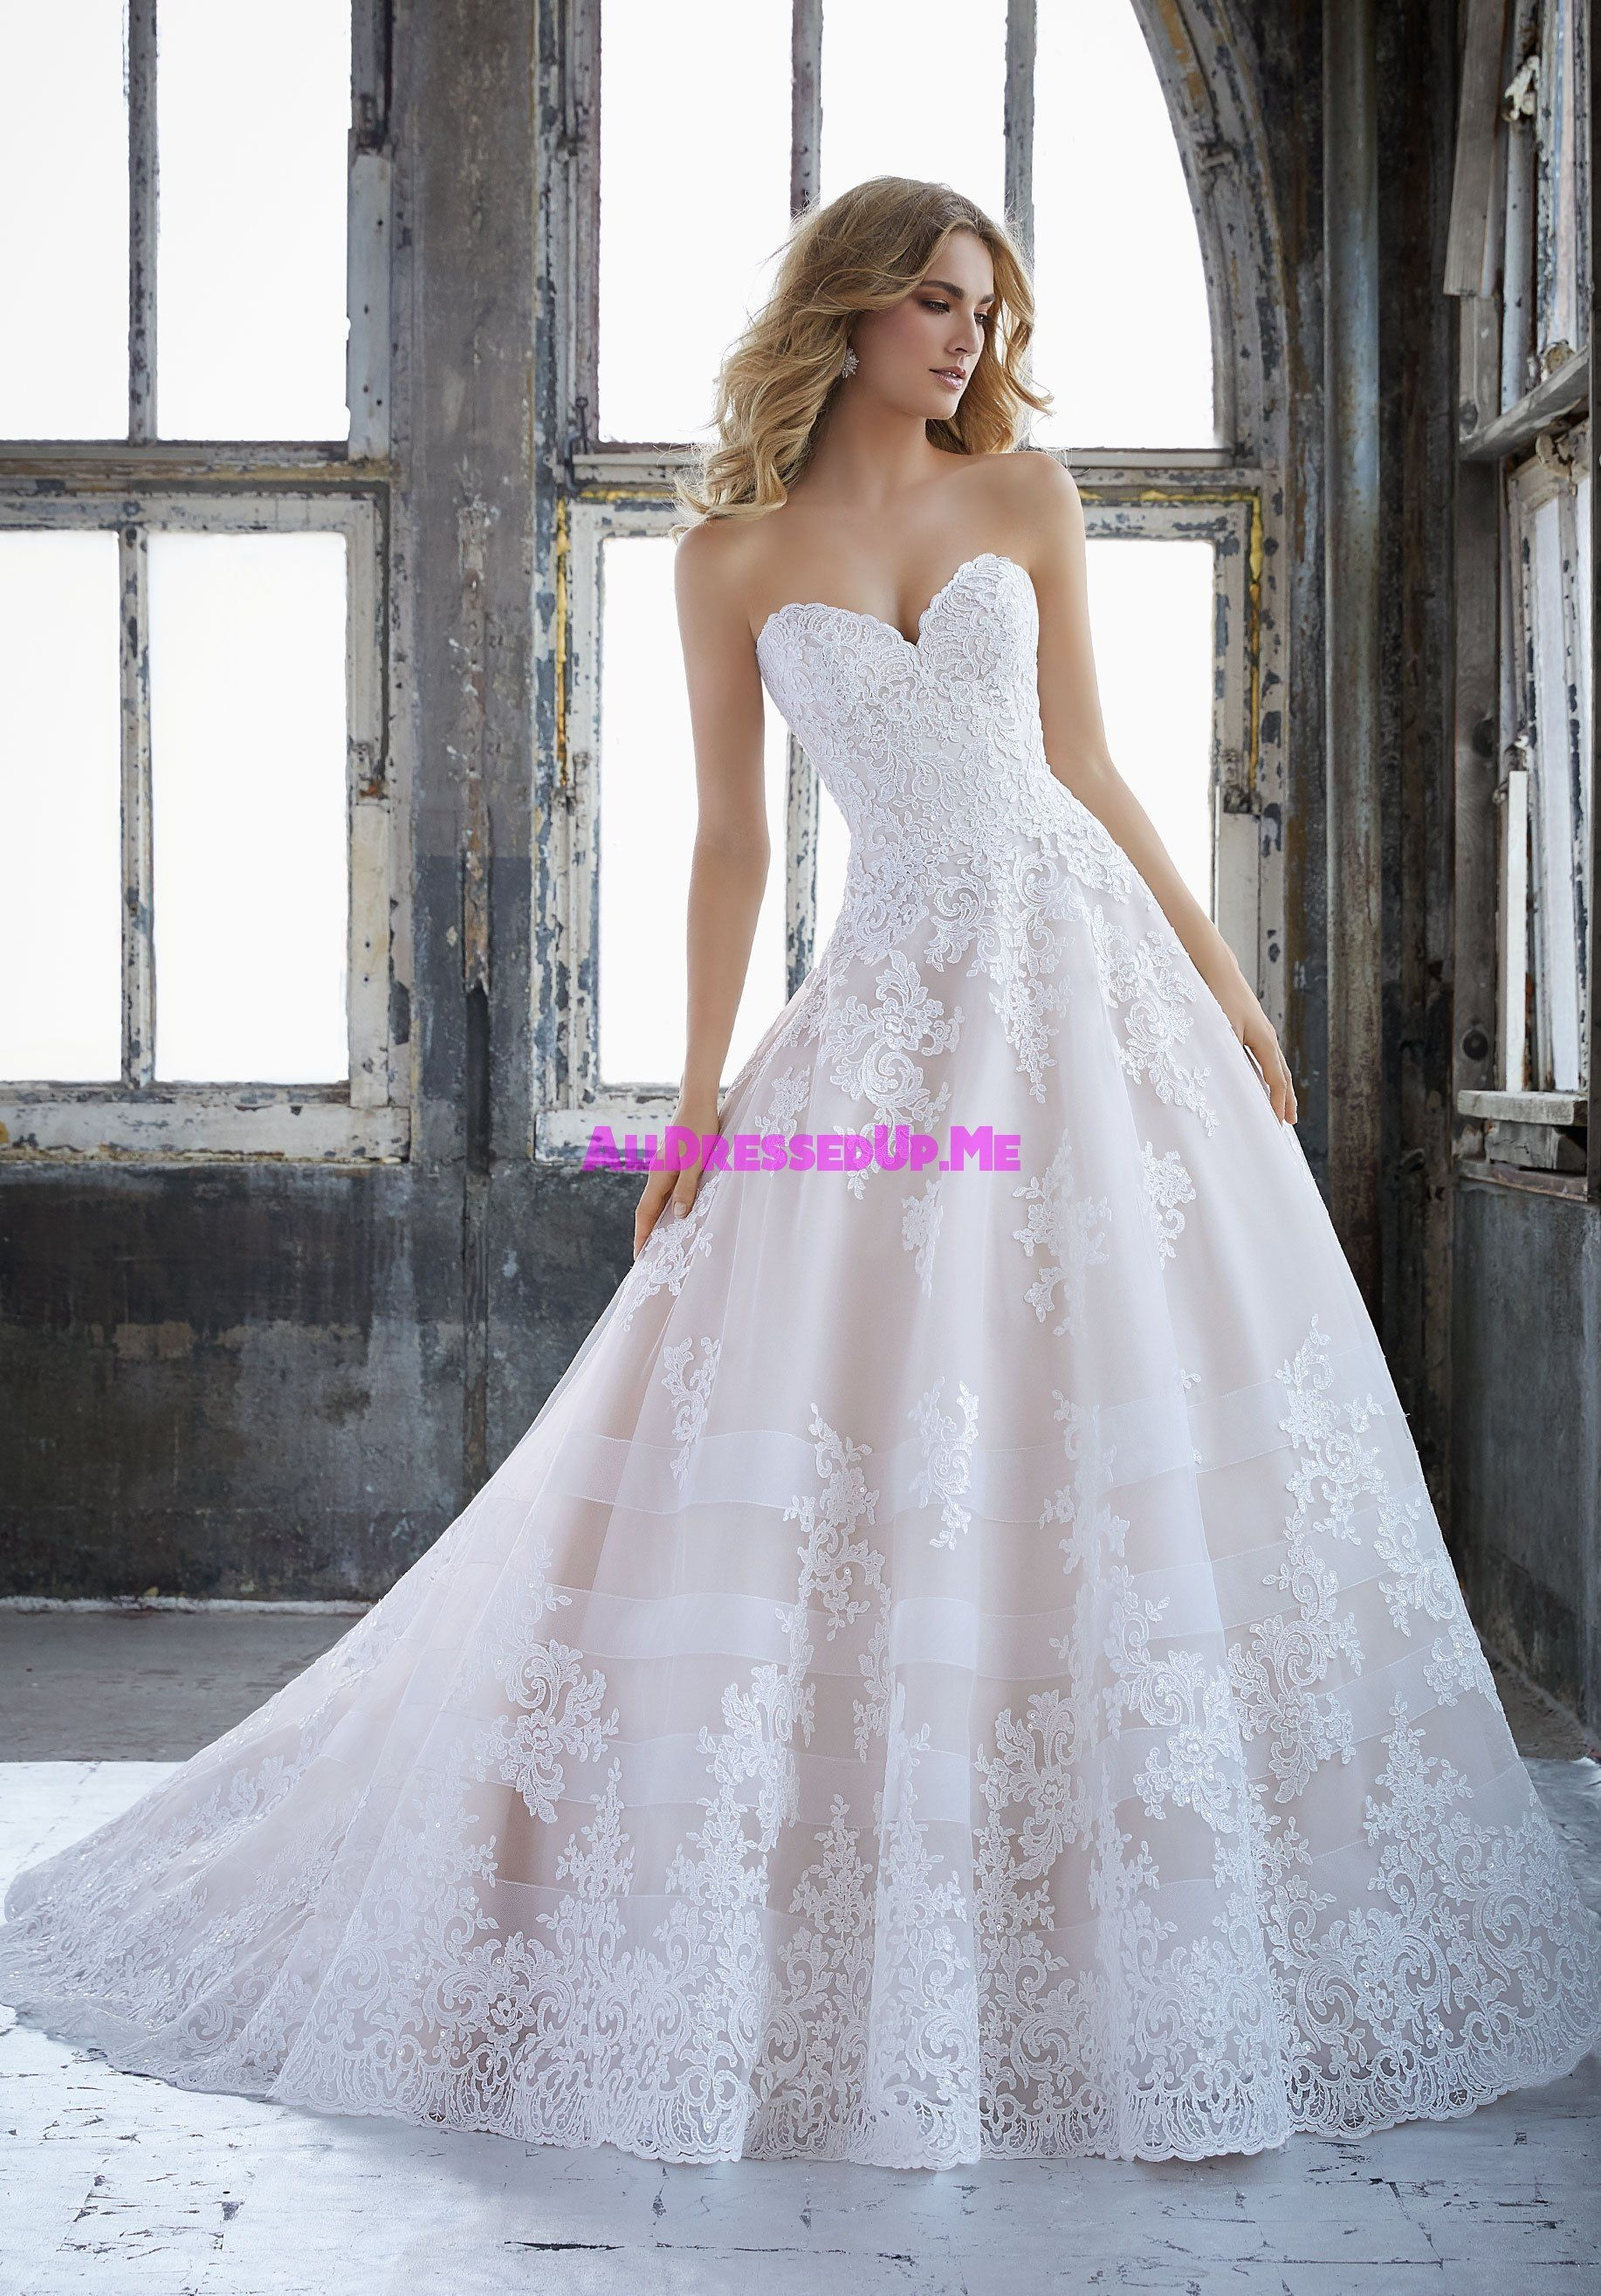 Morilee - 8211 - Kimberley - All Dressed Up, Bridal Gown | Bridal ...